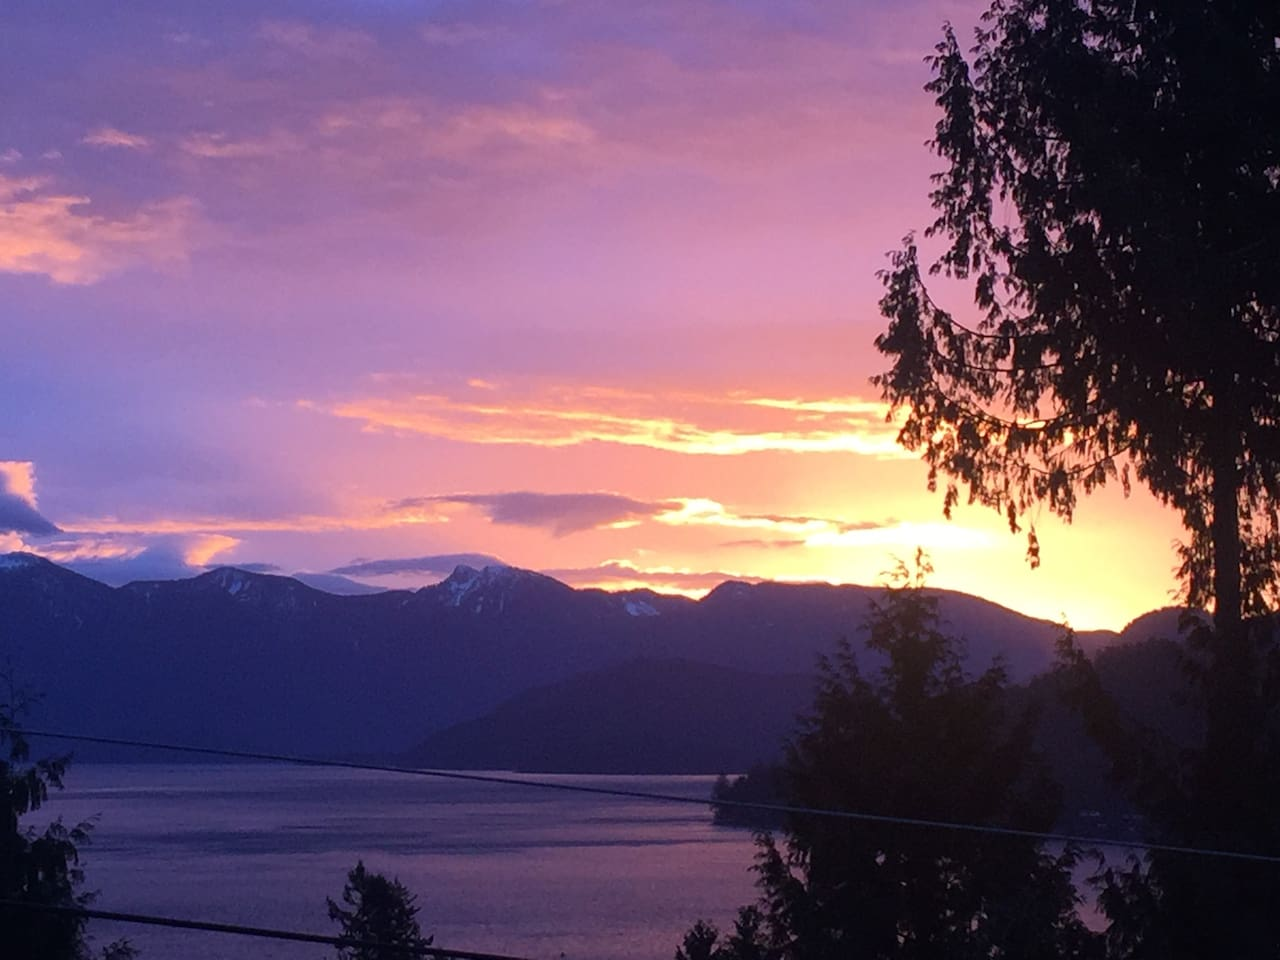 View at sunrise over Howe Sound mountains